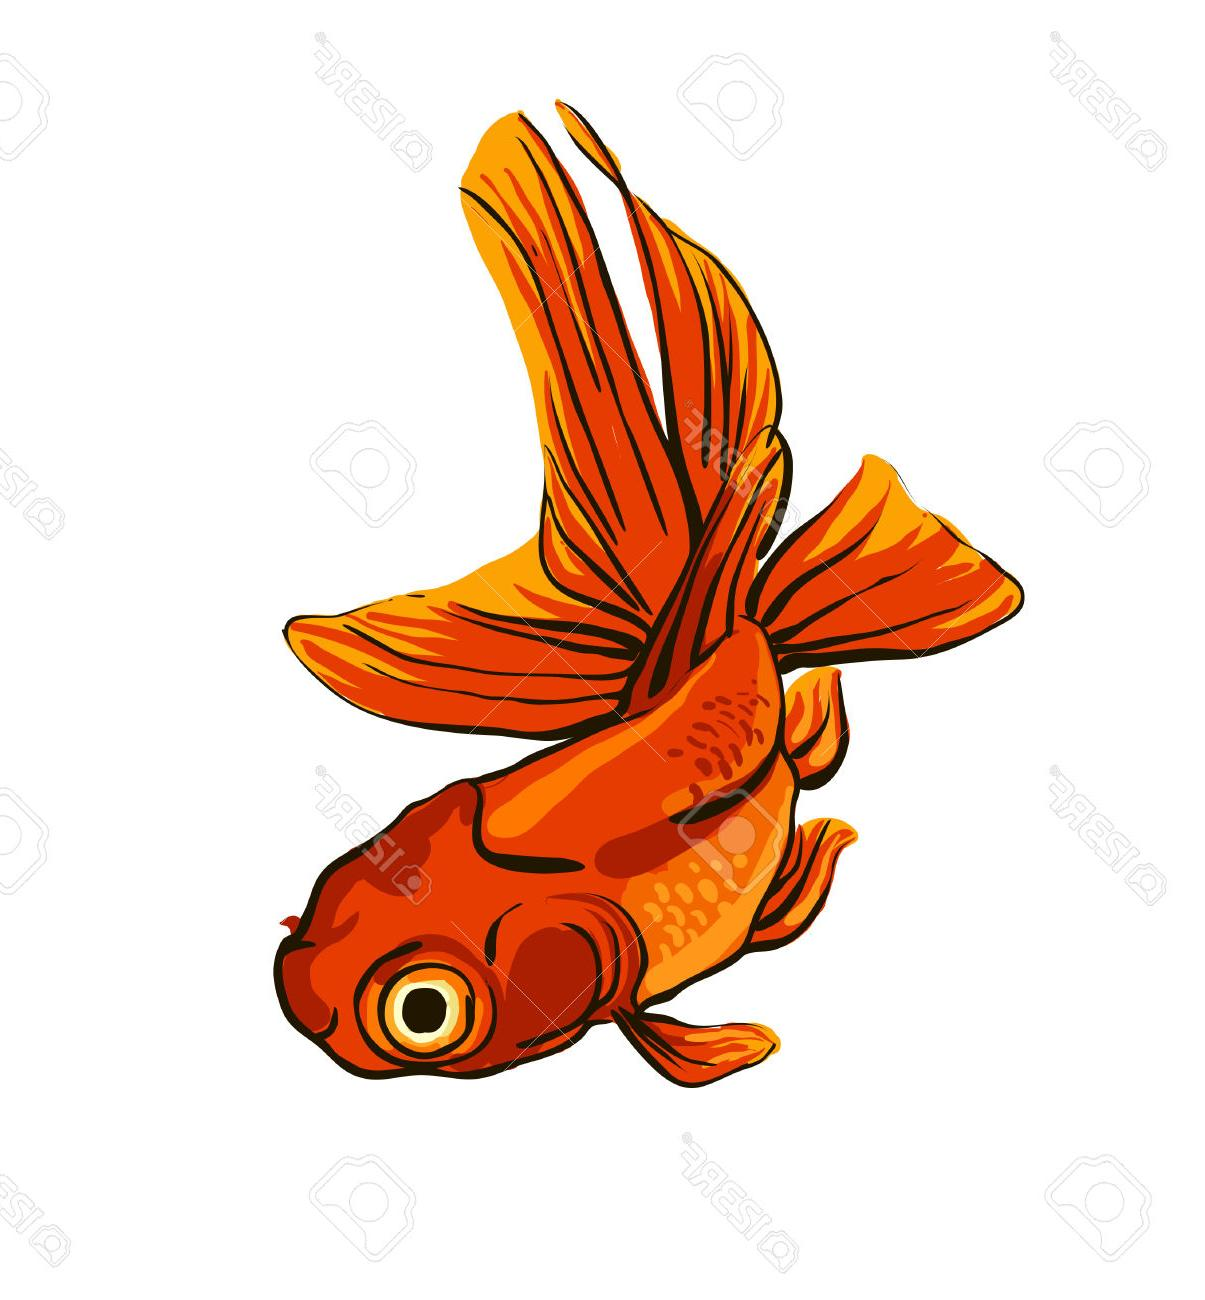 Best red fish file. Goldfish clipart